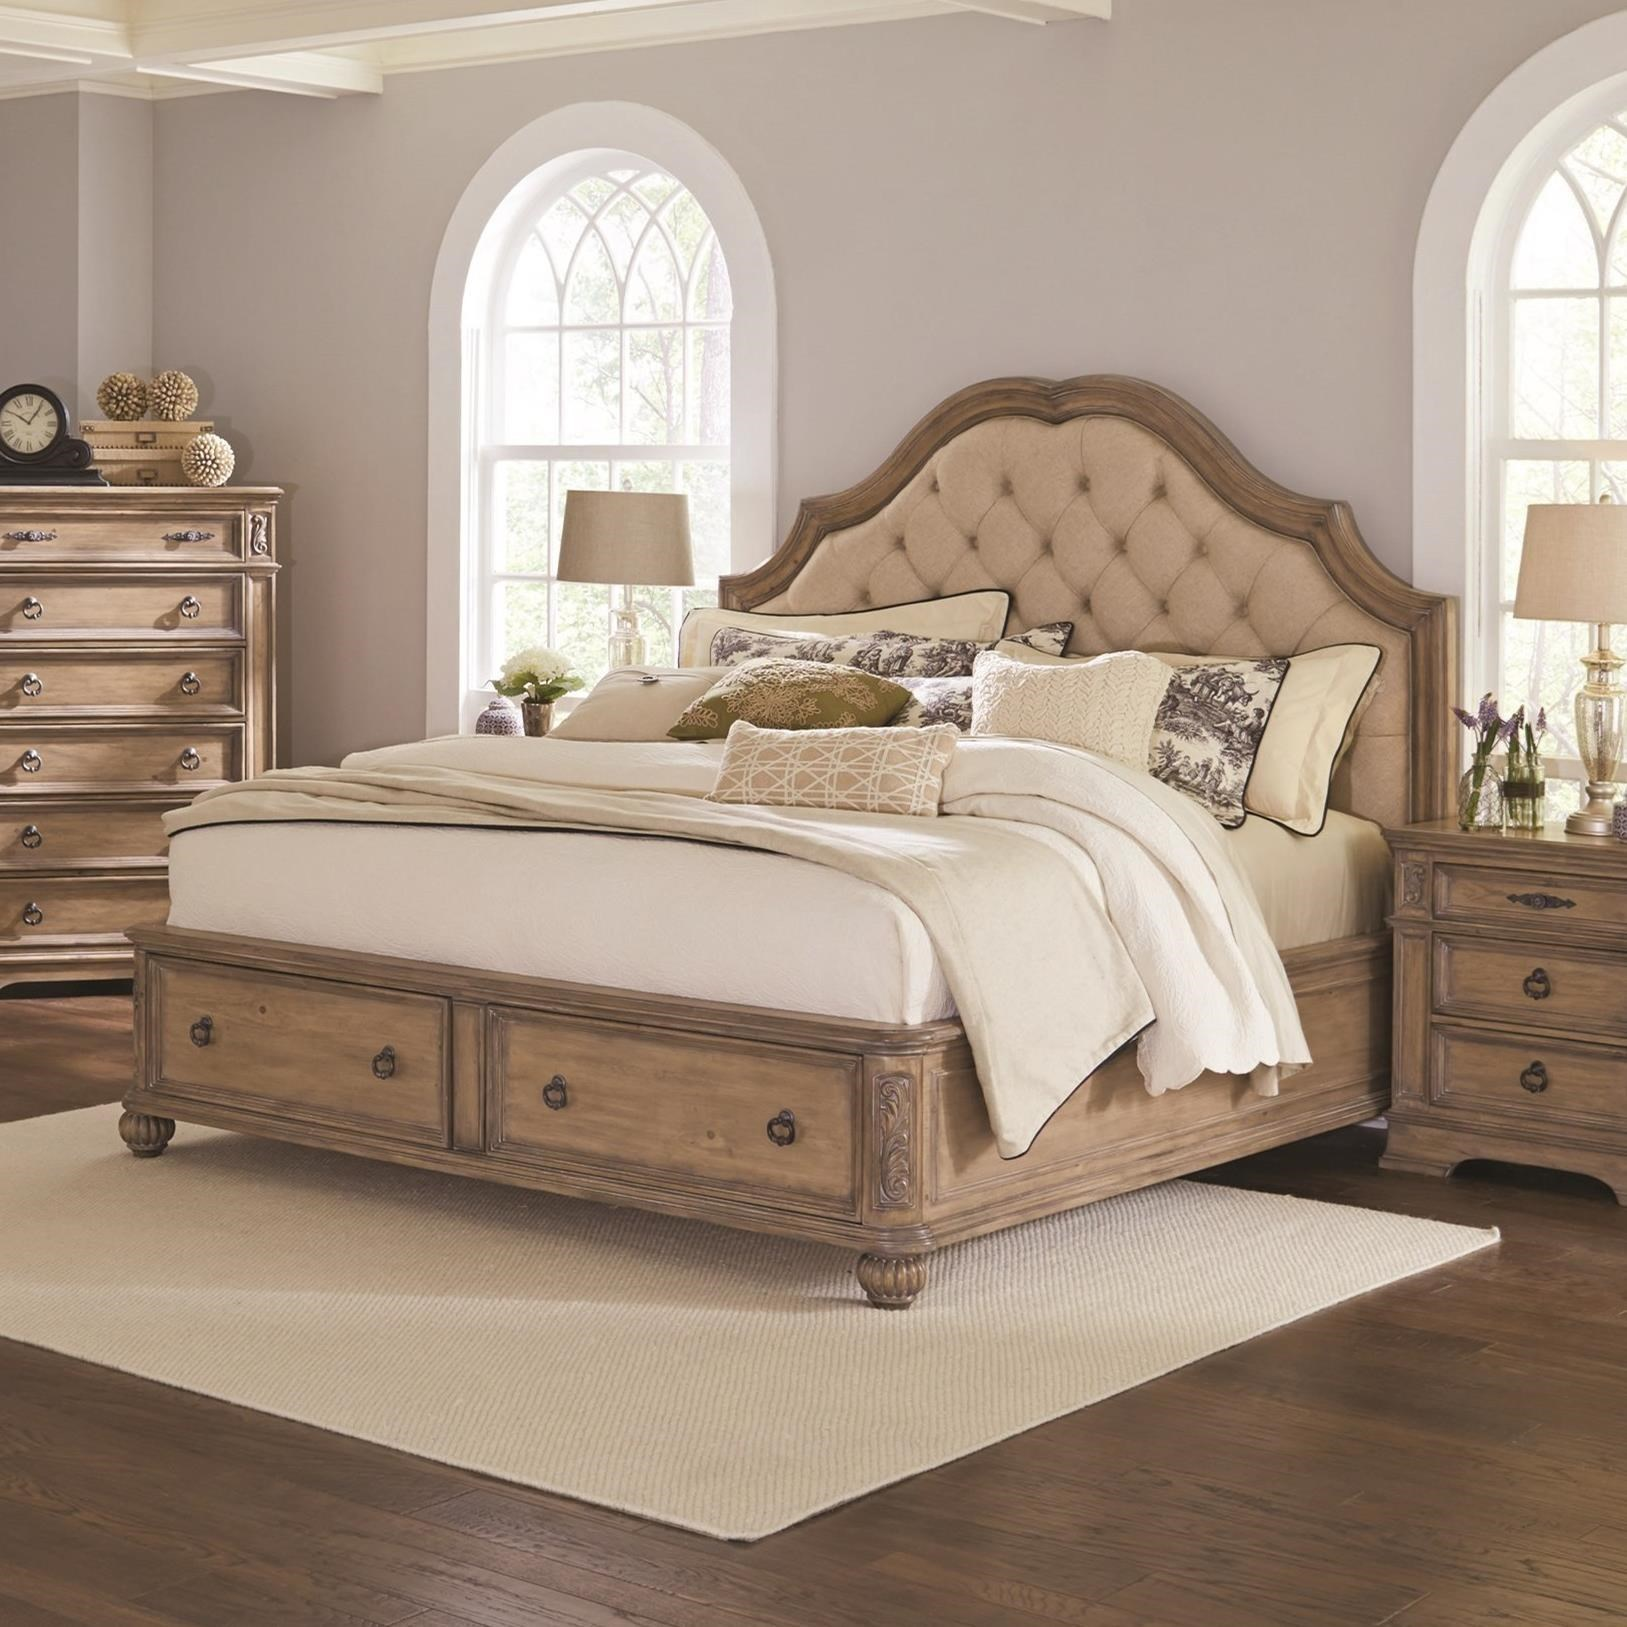 Ilana California King Storage Bed by Coaster at Northeast Factory Direct